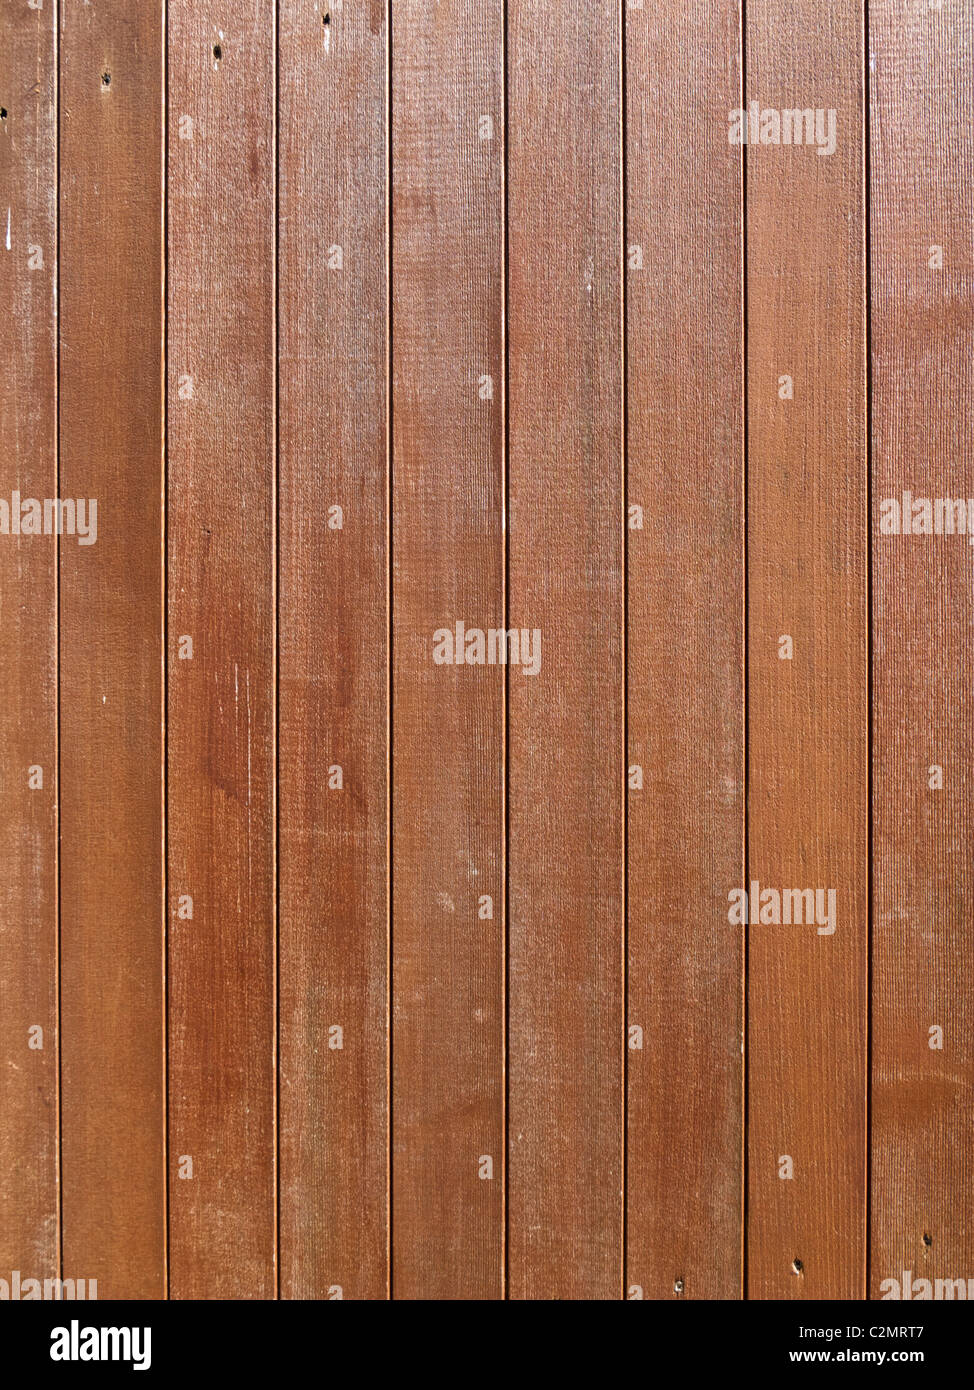 Wood texture - wooden fence panels close up - Stock Image